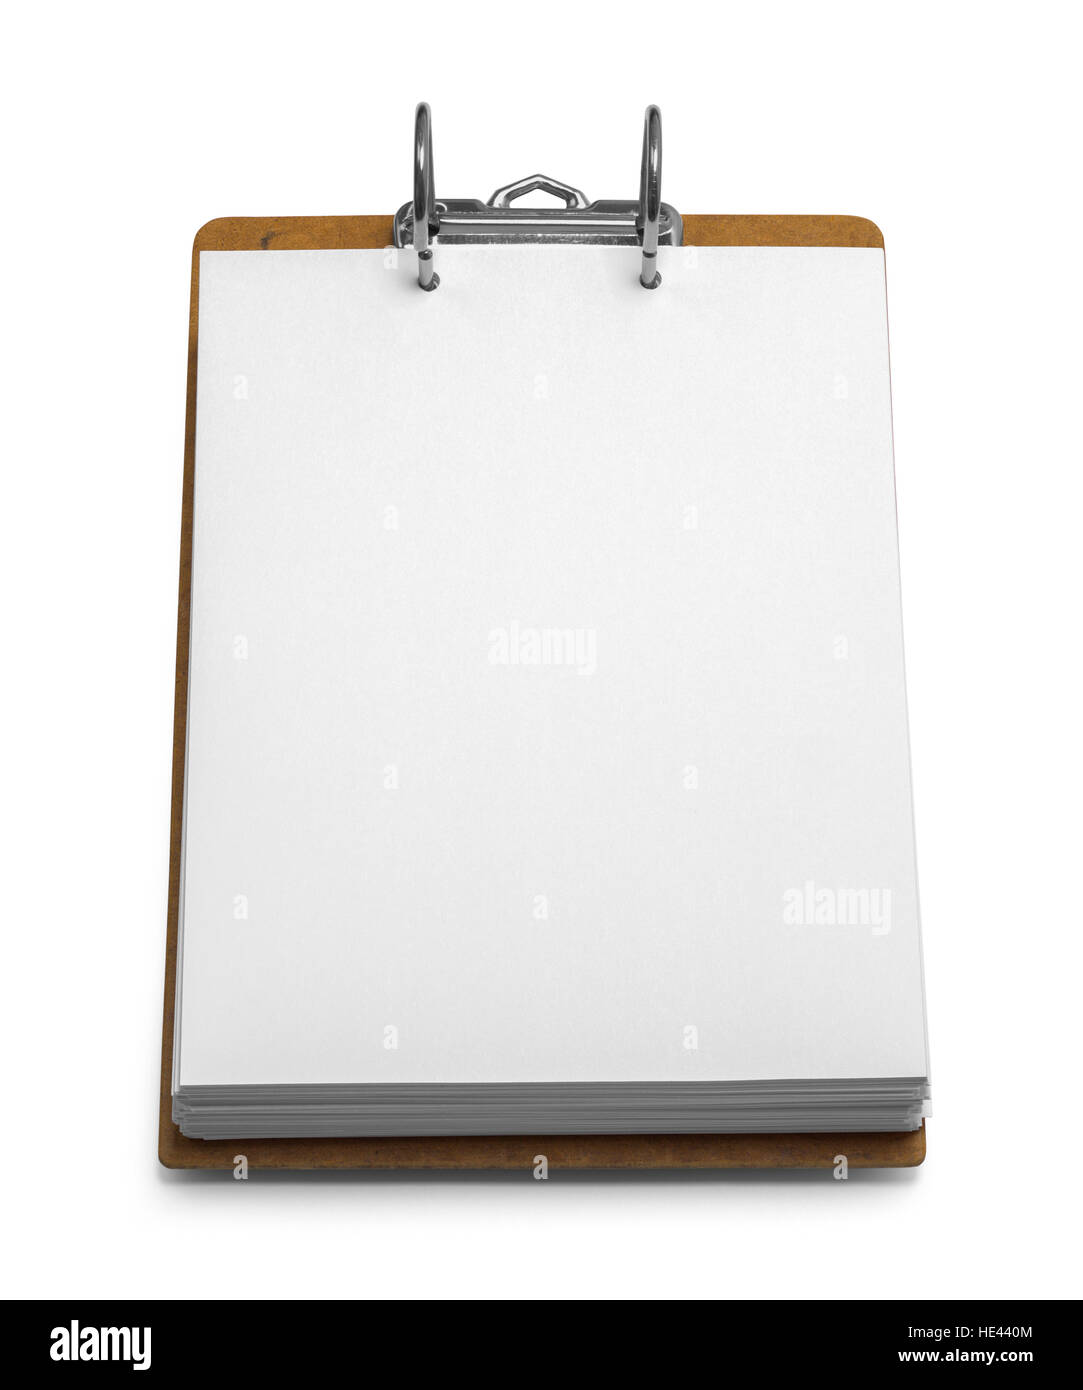 Binder Clipboard with Paper Isolated on White Background. - Stock Image